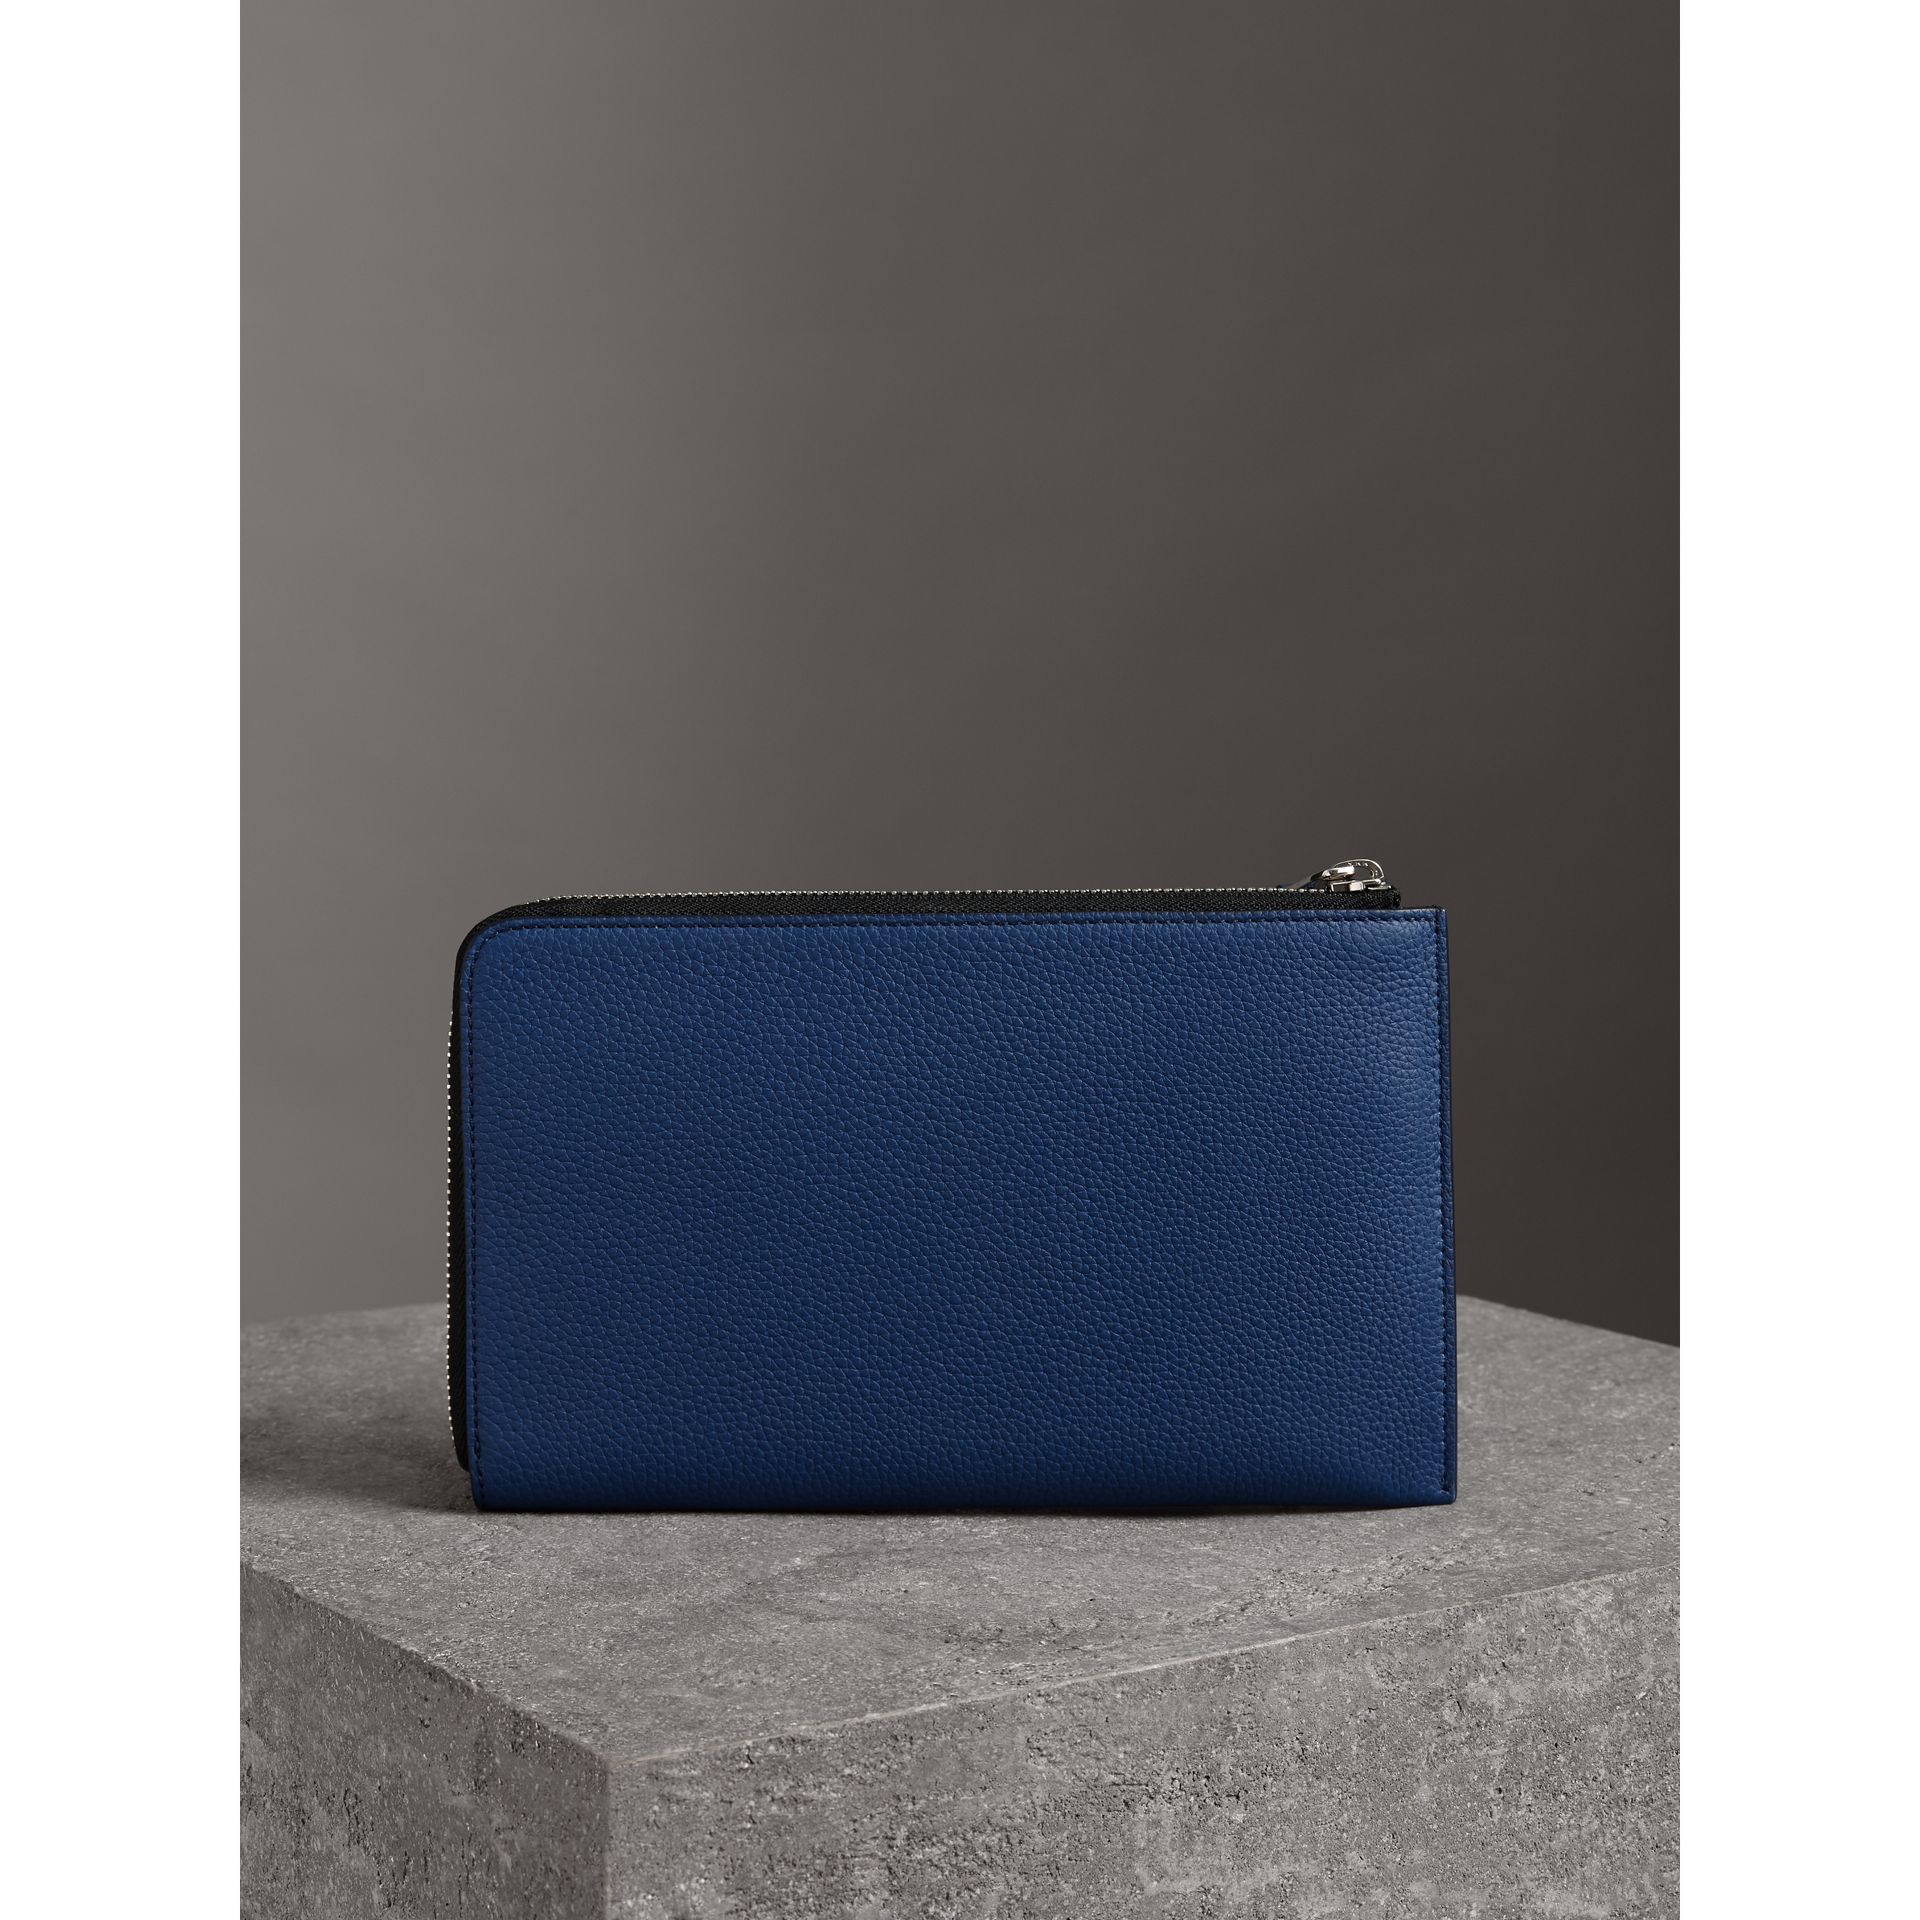 Two-tone Grainy Leather Travel Wallet in Bright Ultramarine - Men | Burberry Singapore - gallery image 2